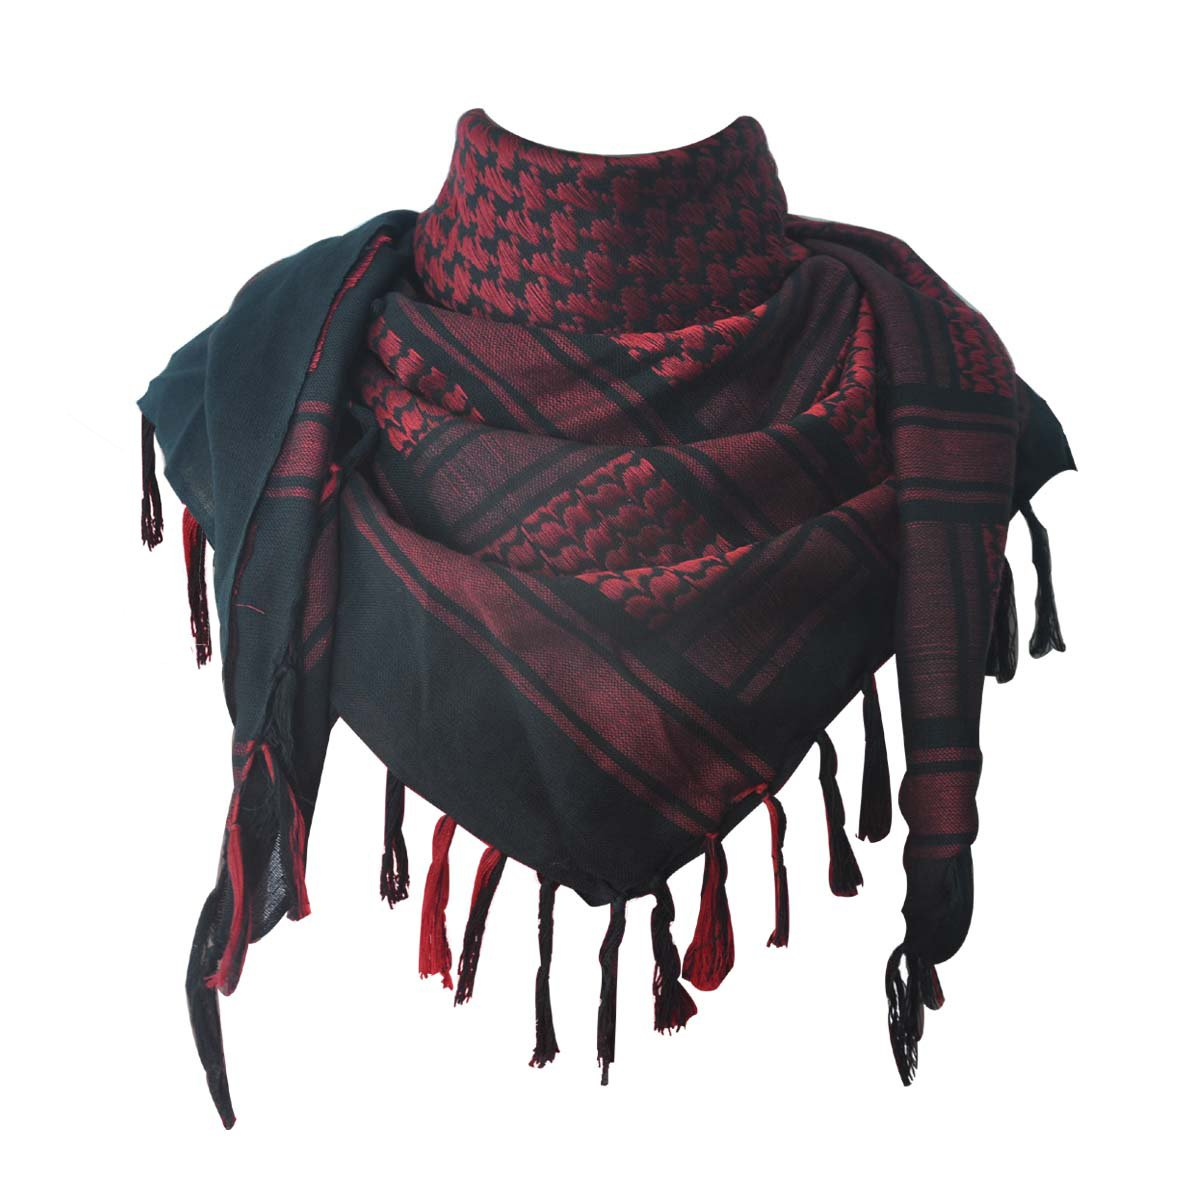 Explore Land 100% Cotton Military Shemagh Tactical Desert Keffiyeh Scarf Wrap (Black and Red)